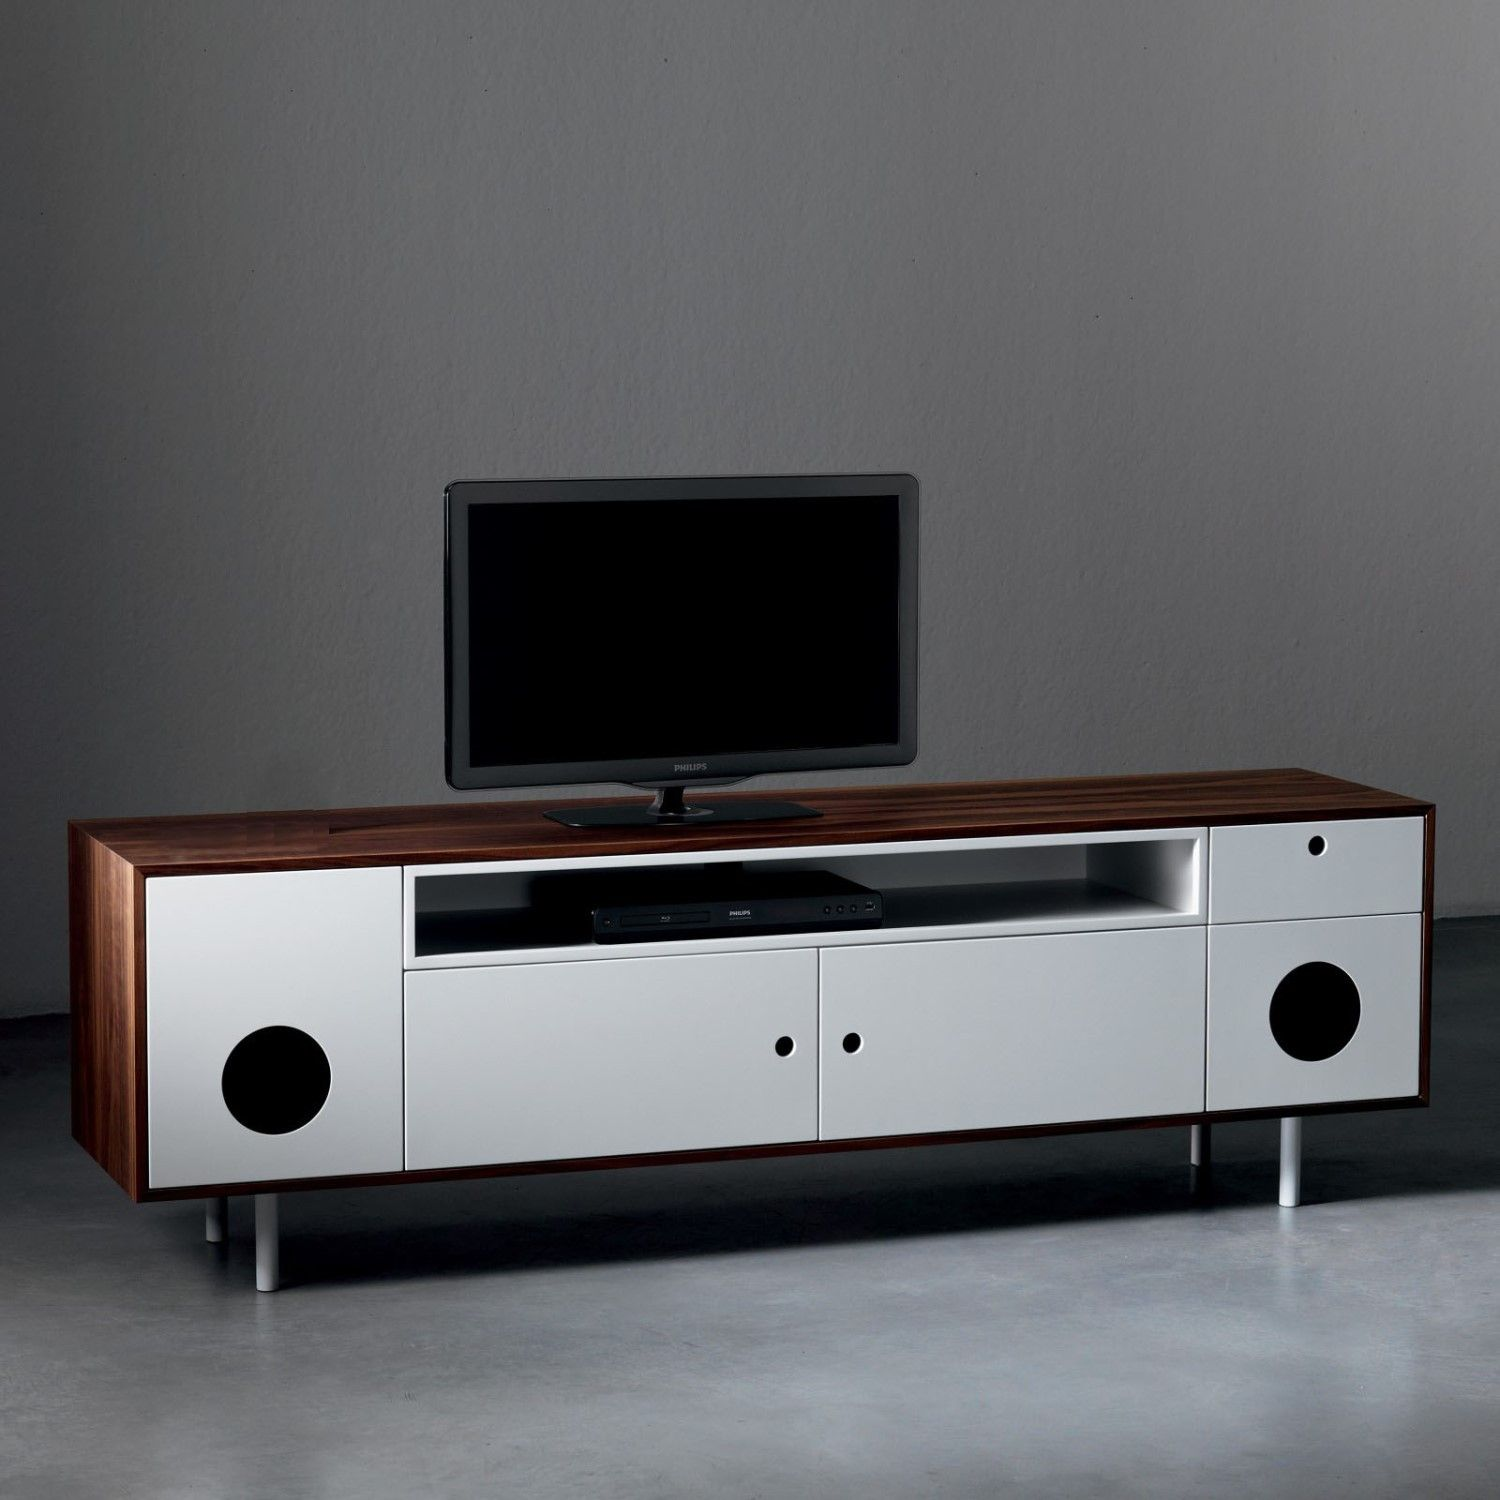 Tv television stands austin s furniture - Caixa Tv Stand Cabinet With Built In Speakers